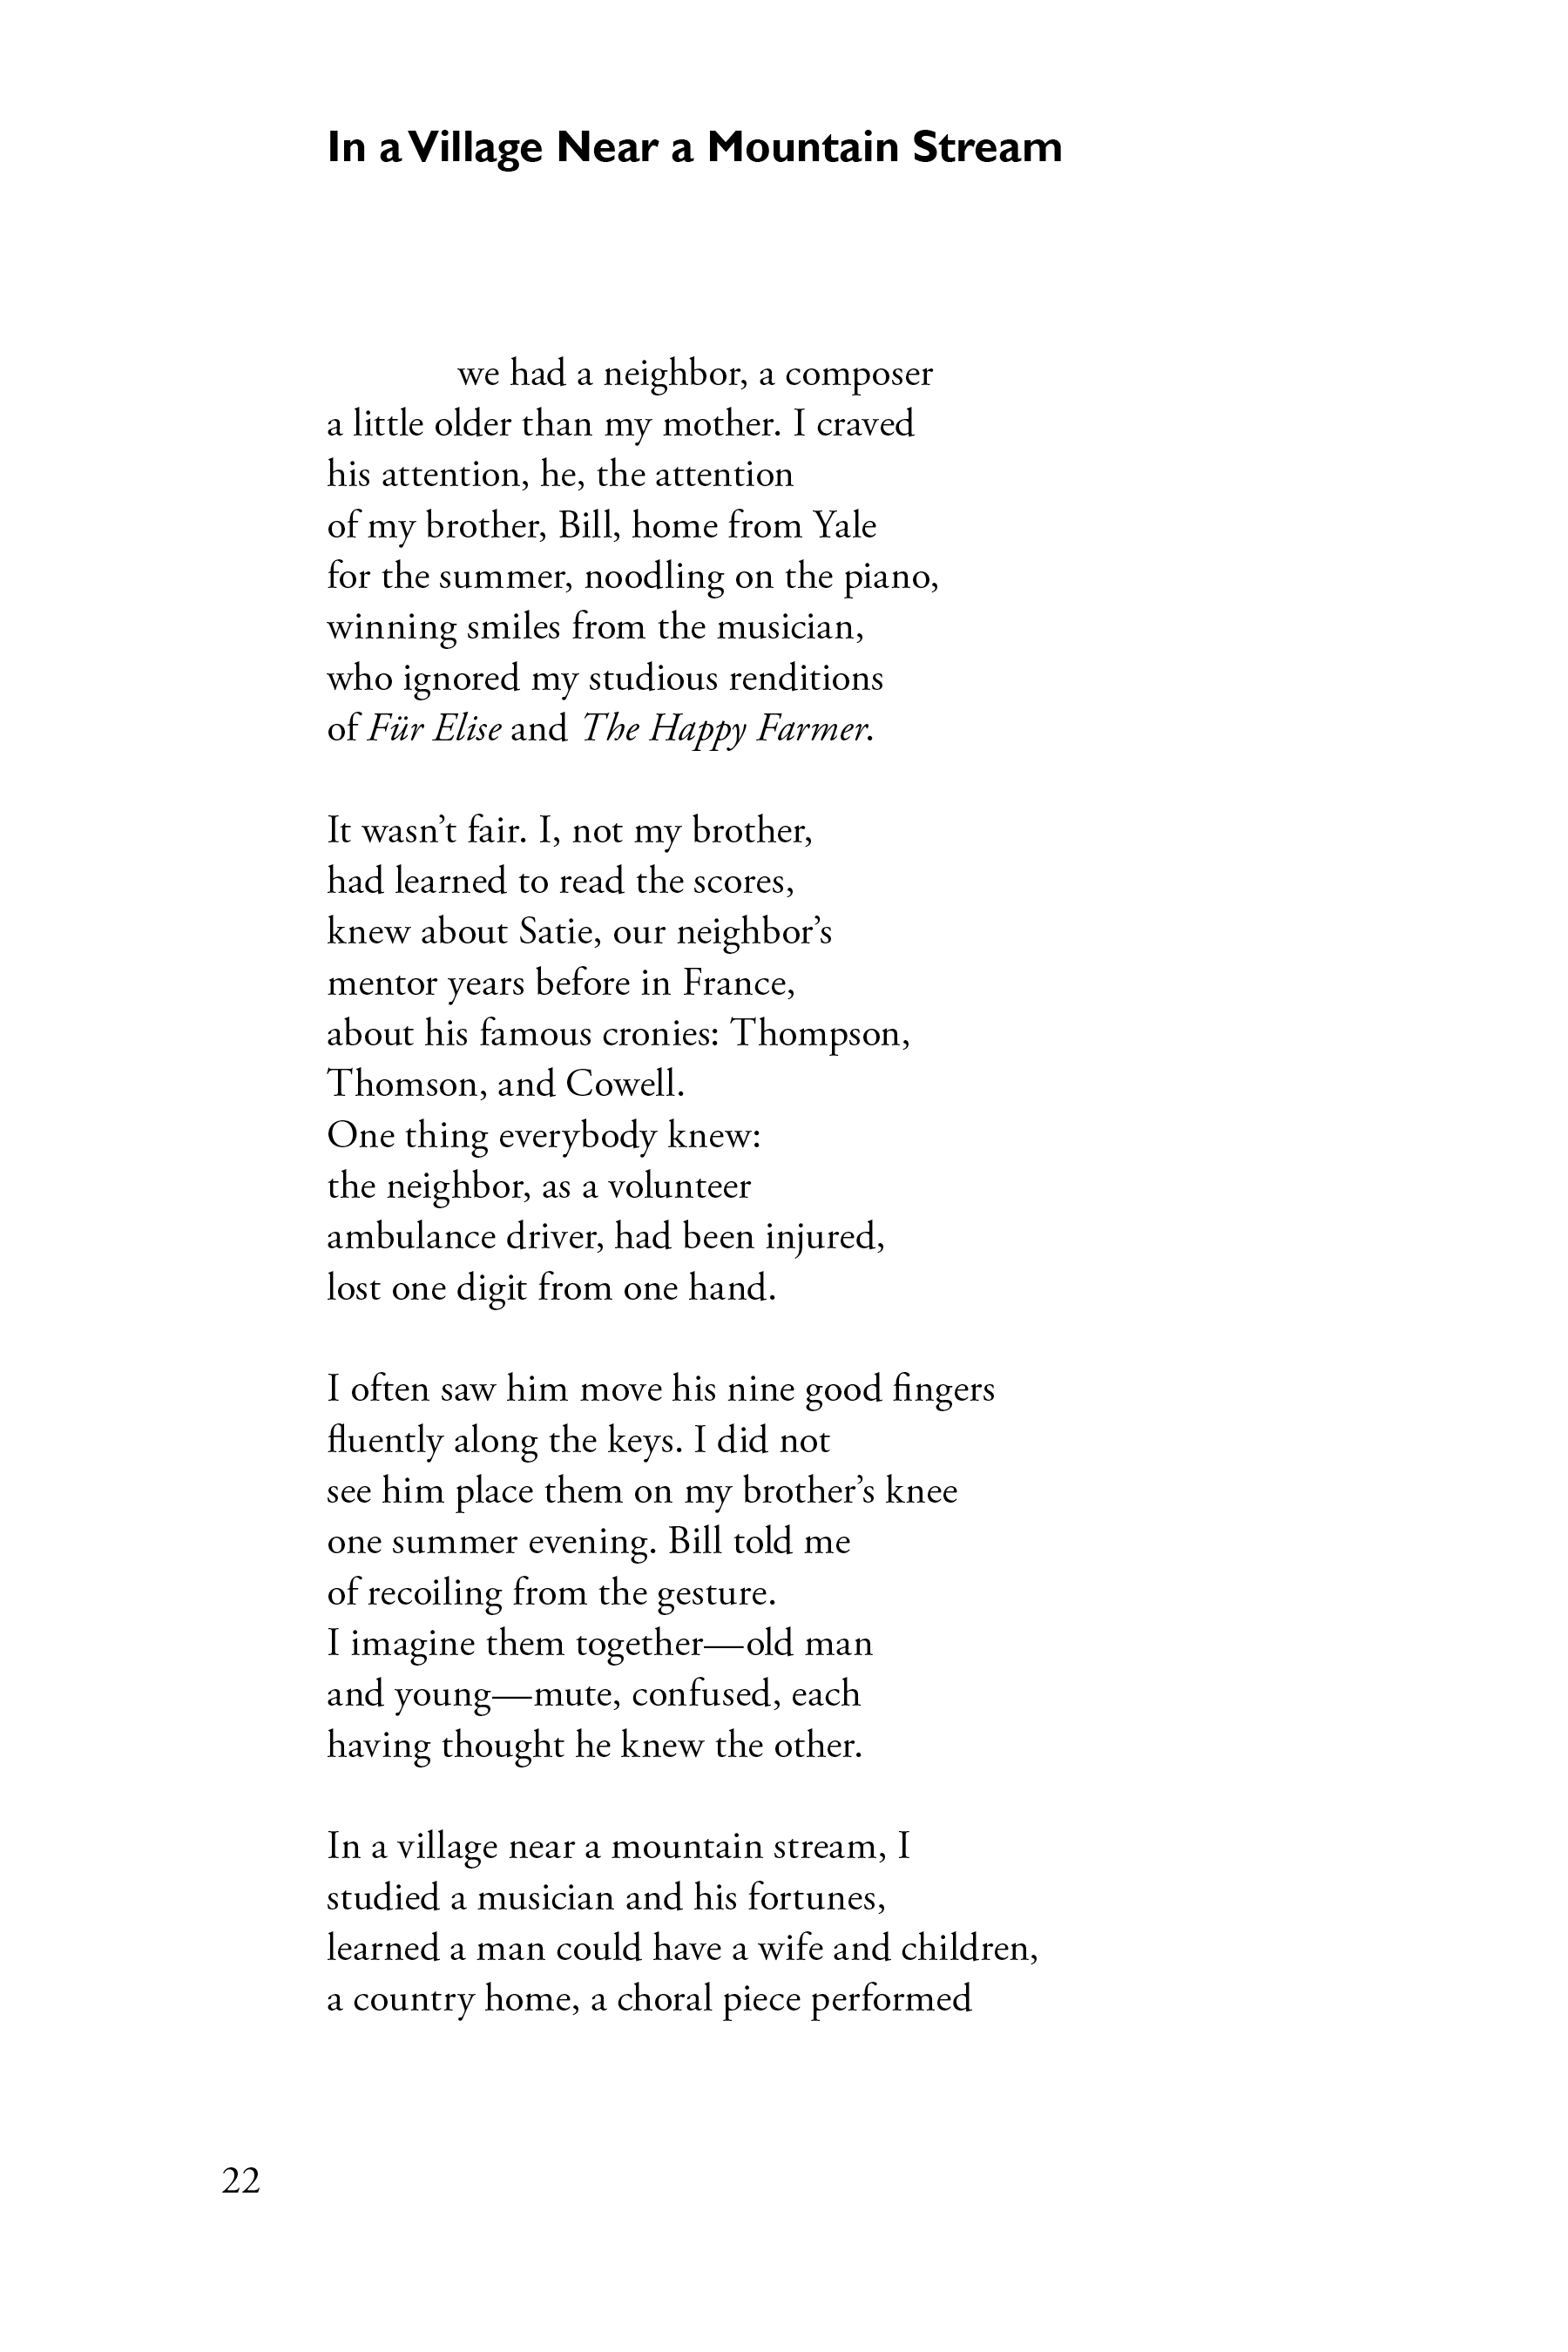 One Sarah White poem from